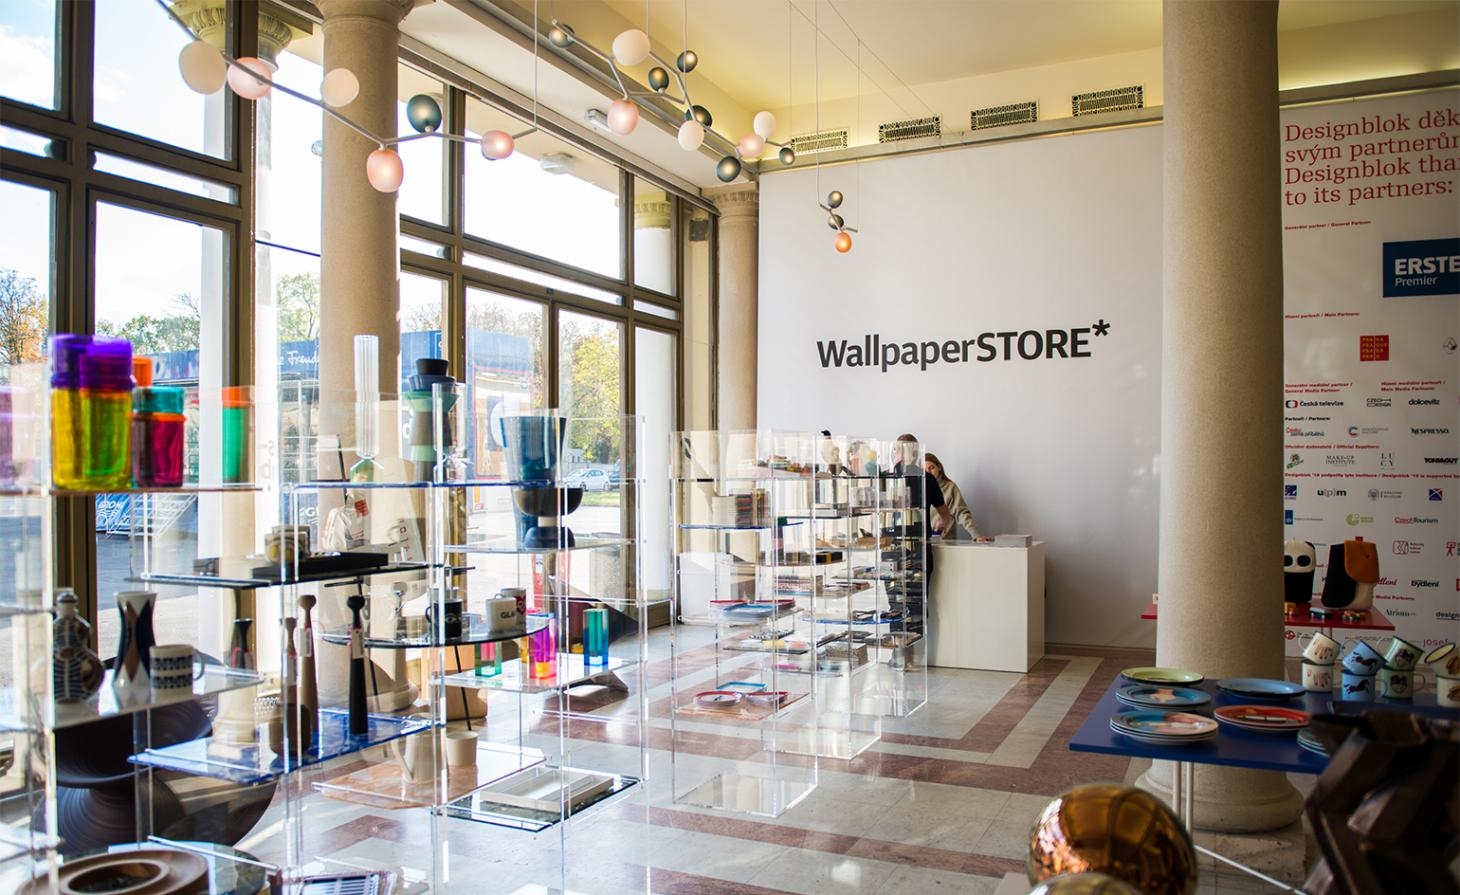 WallpaperSTORE pop-up in Prague